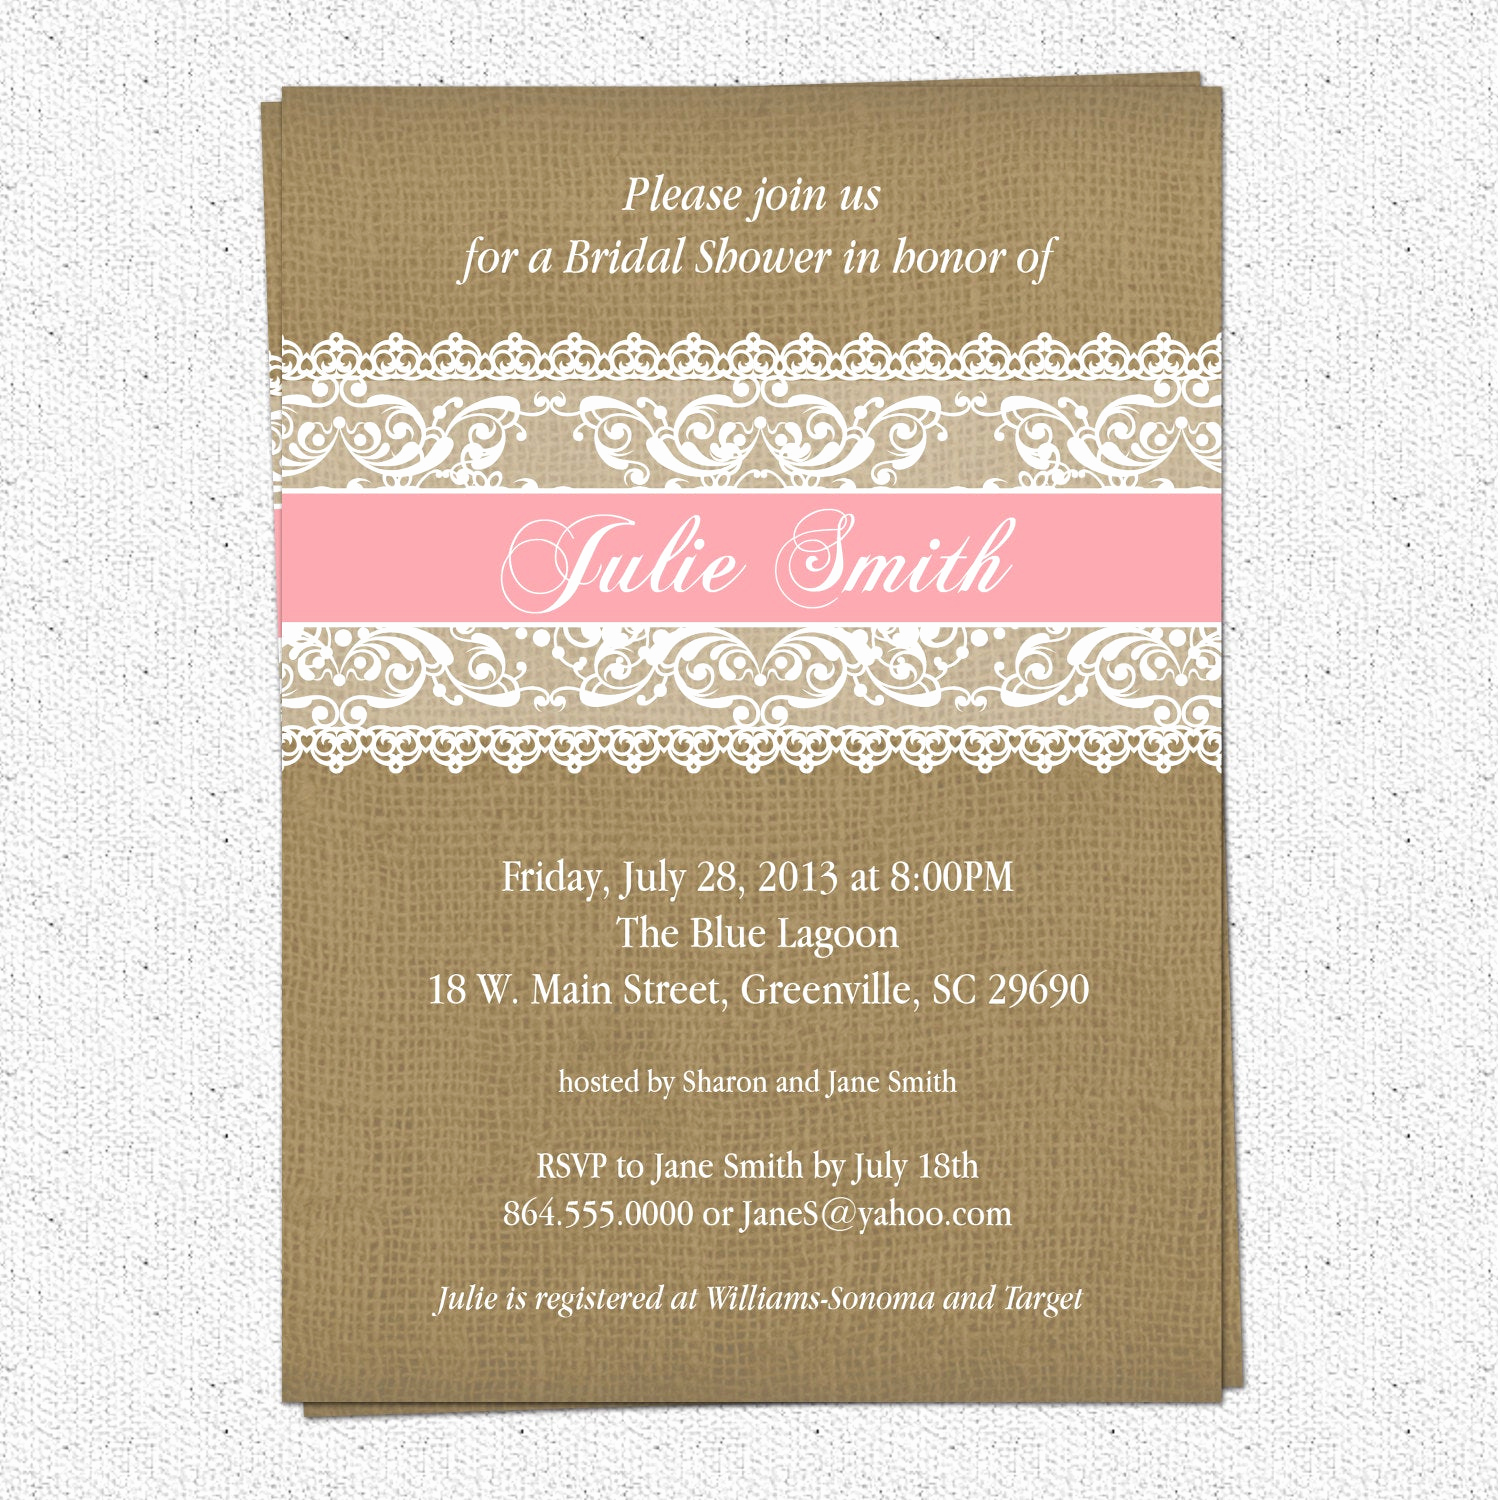 Honeymoon Shower Invitation Wording Lovely Burlap and Lace Bridal Shower Invitation Rustic Pick Your